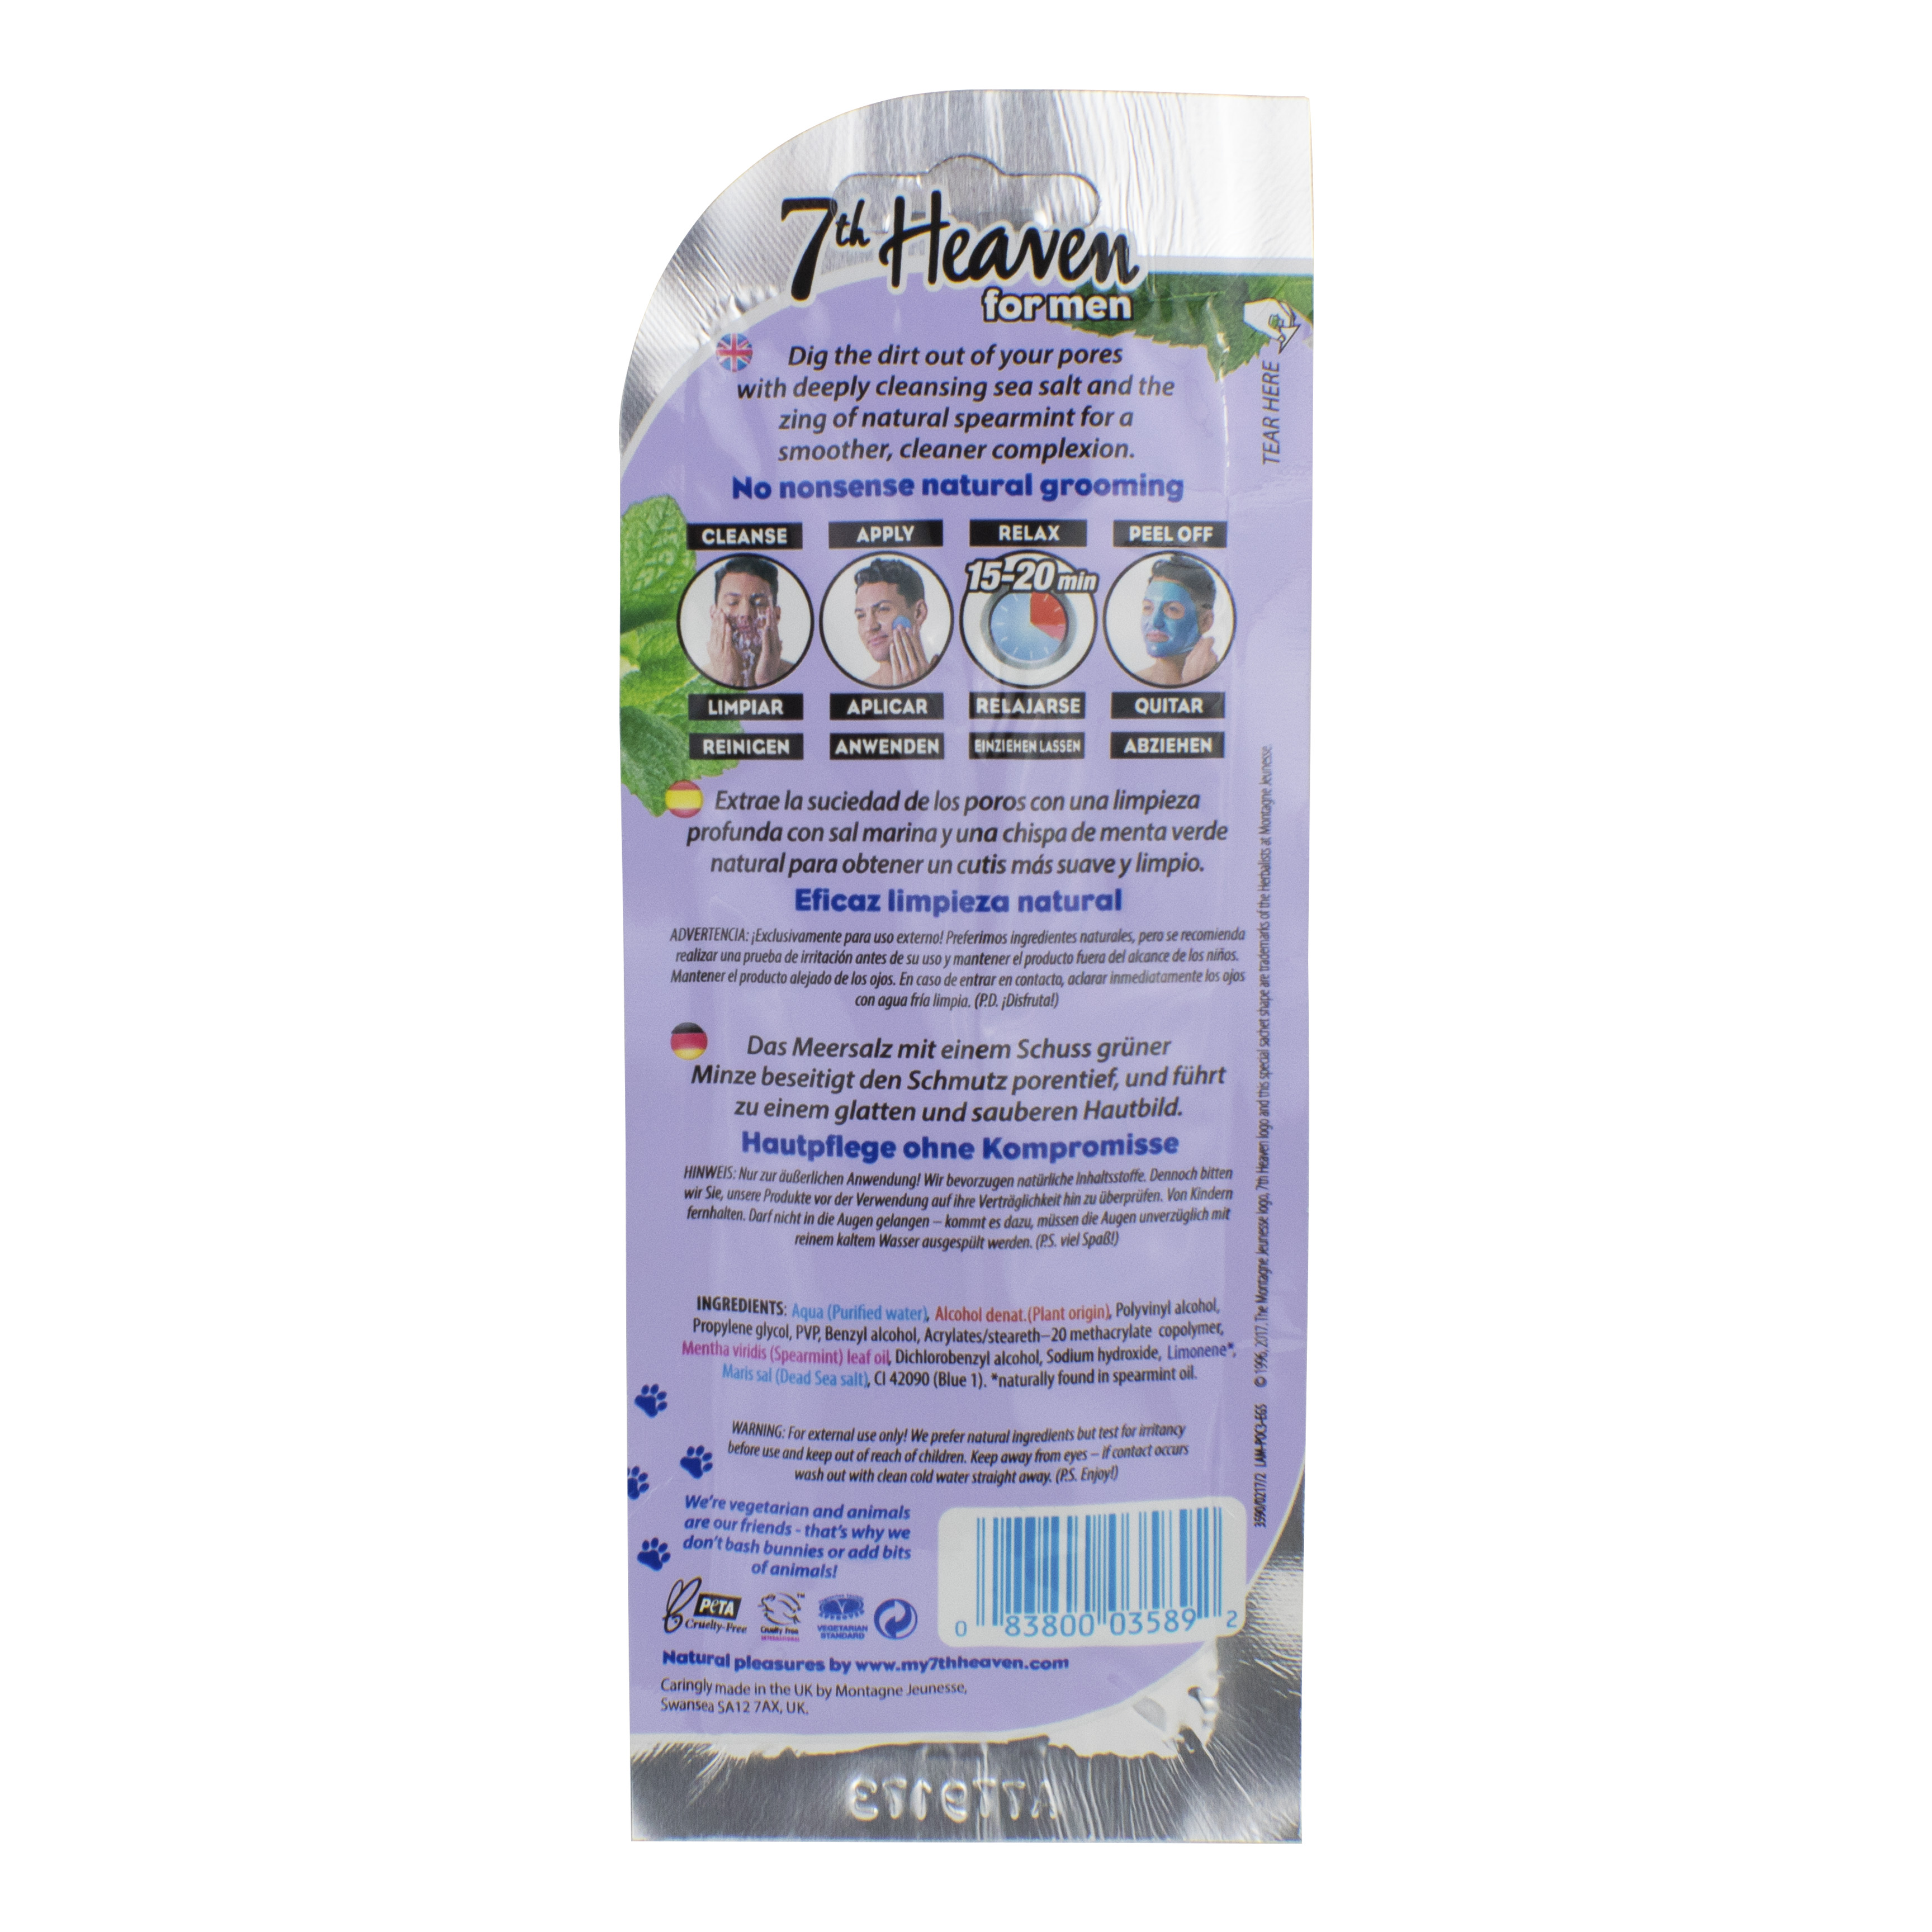 7th Heaven for Men, Peel-Off Deep Pore Cleansing Face Mask, 0.35oz Dr. Dennis Gross Ferulic + Retinol Wrinkle Recovery Overnight Serum - 5 Pack - Total 0.80 fl oz / 25ml